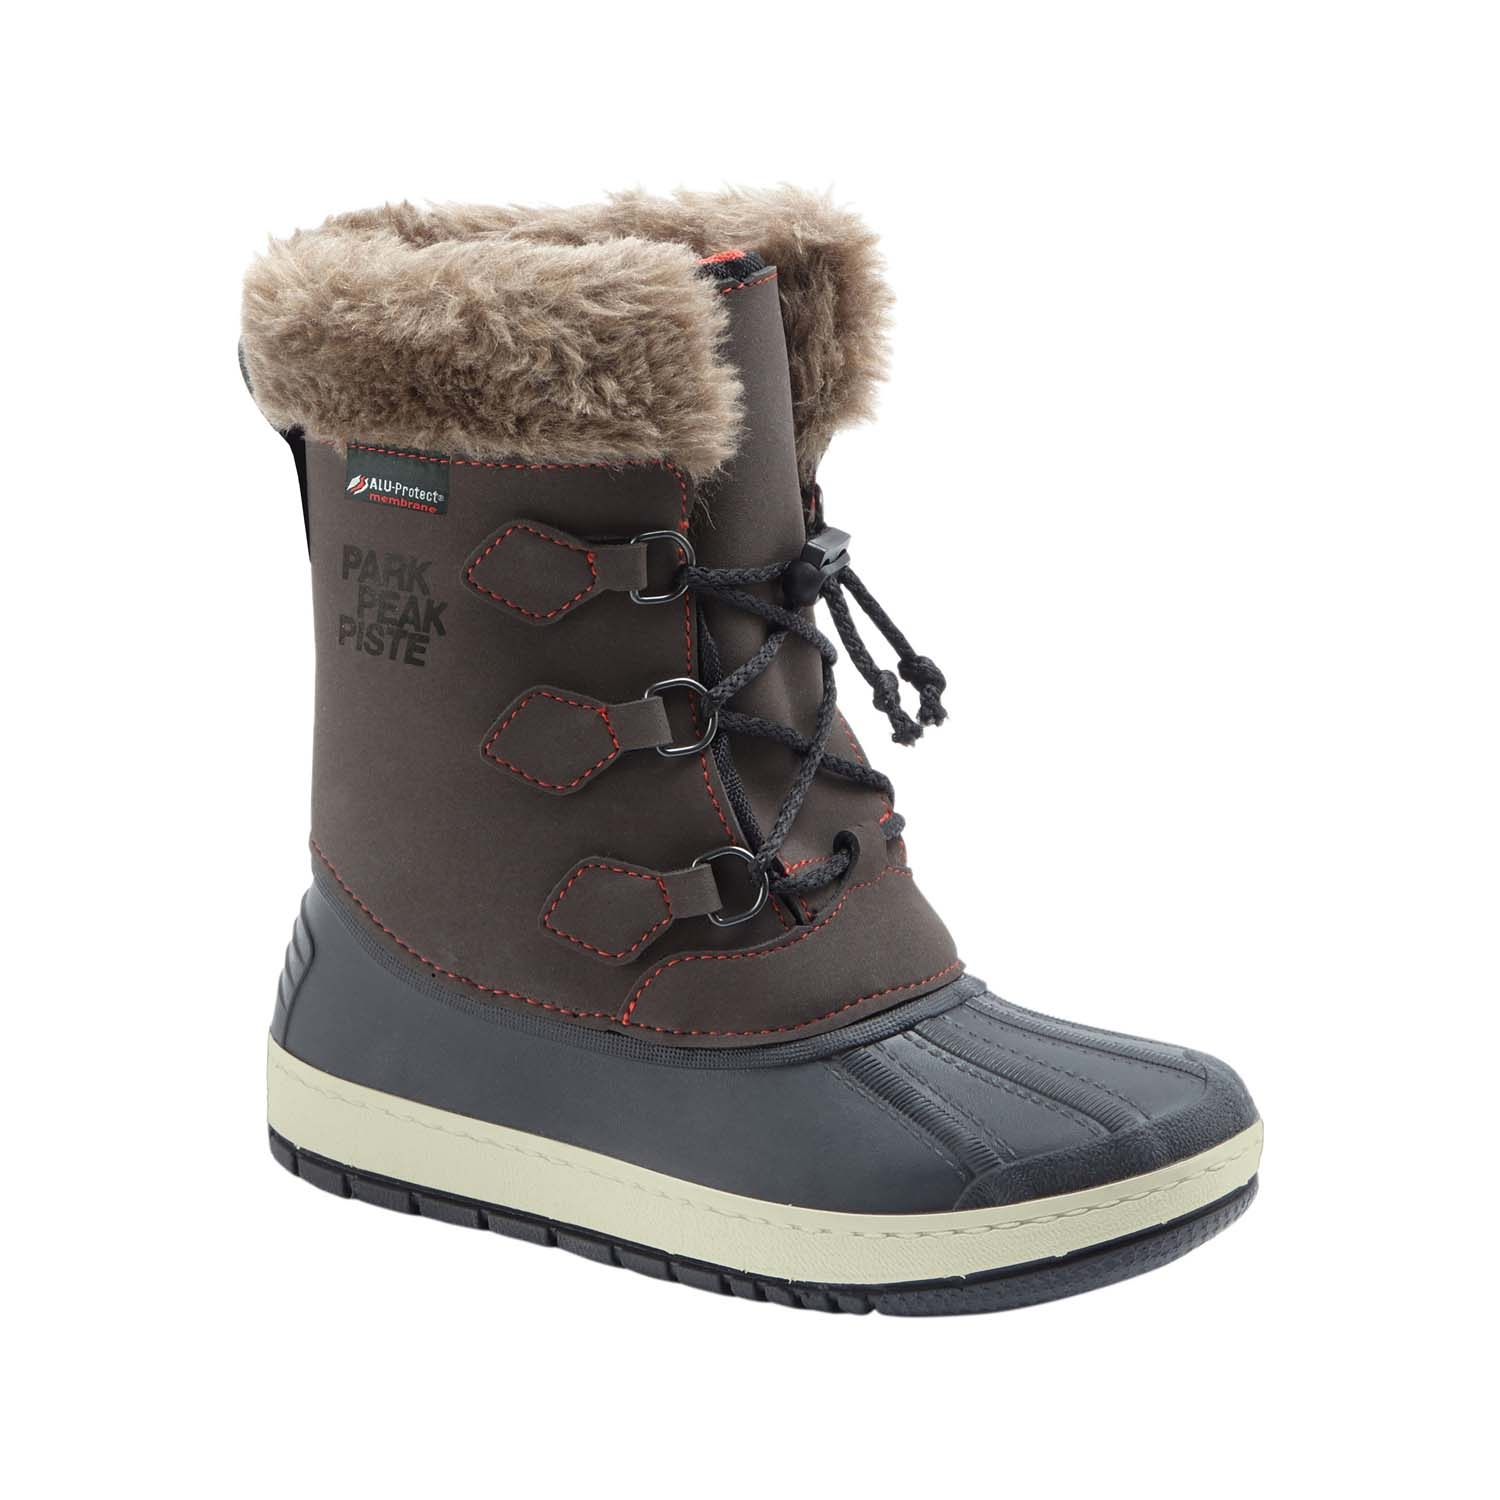 Manbi Nanouk Kids Snow Boots Brown 2021